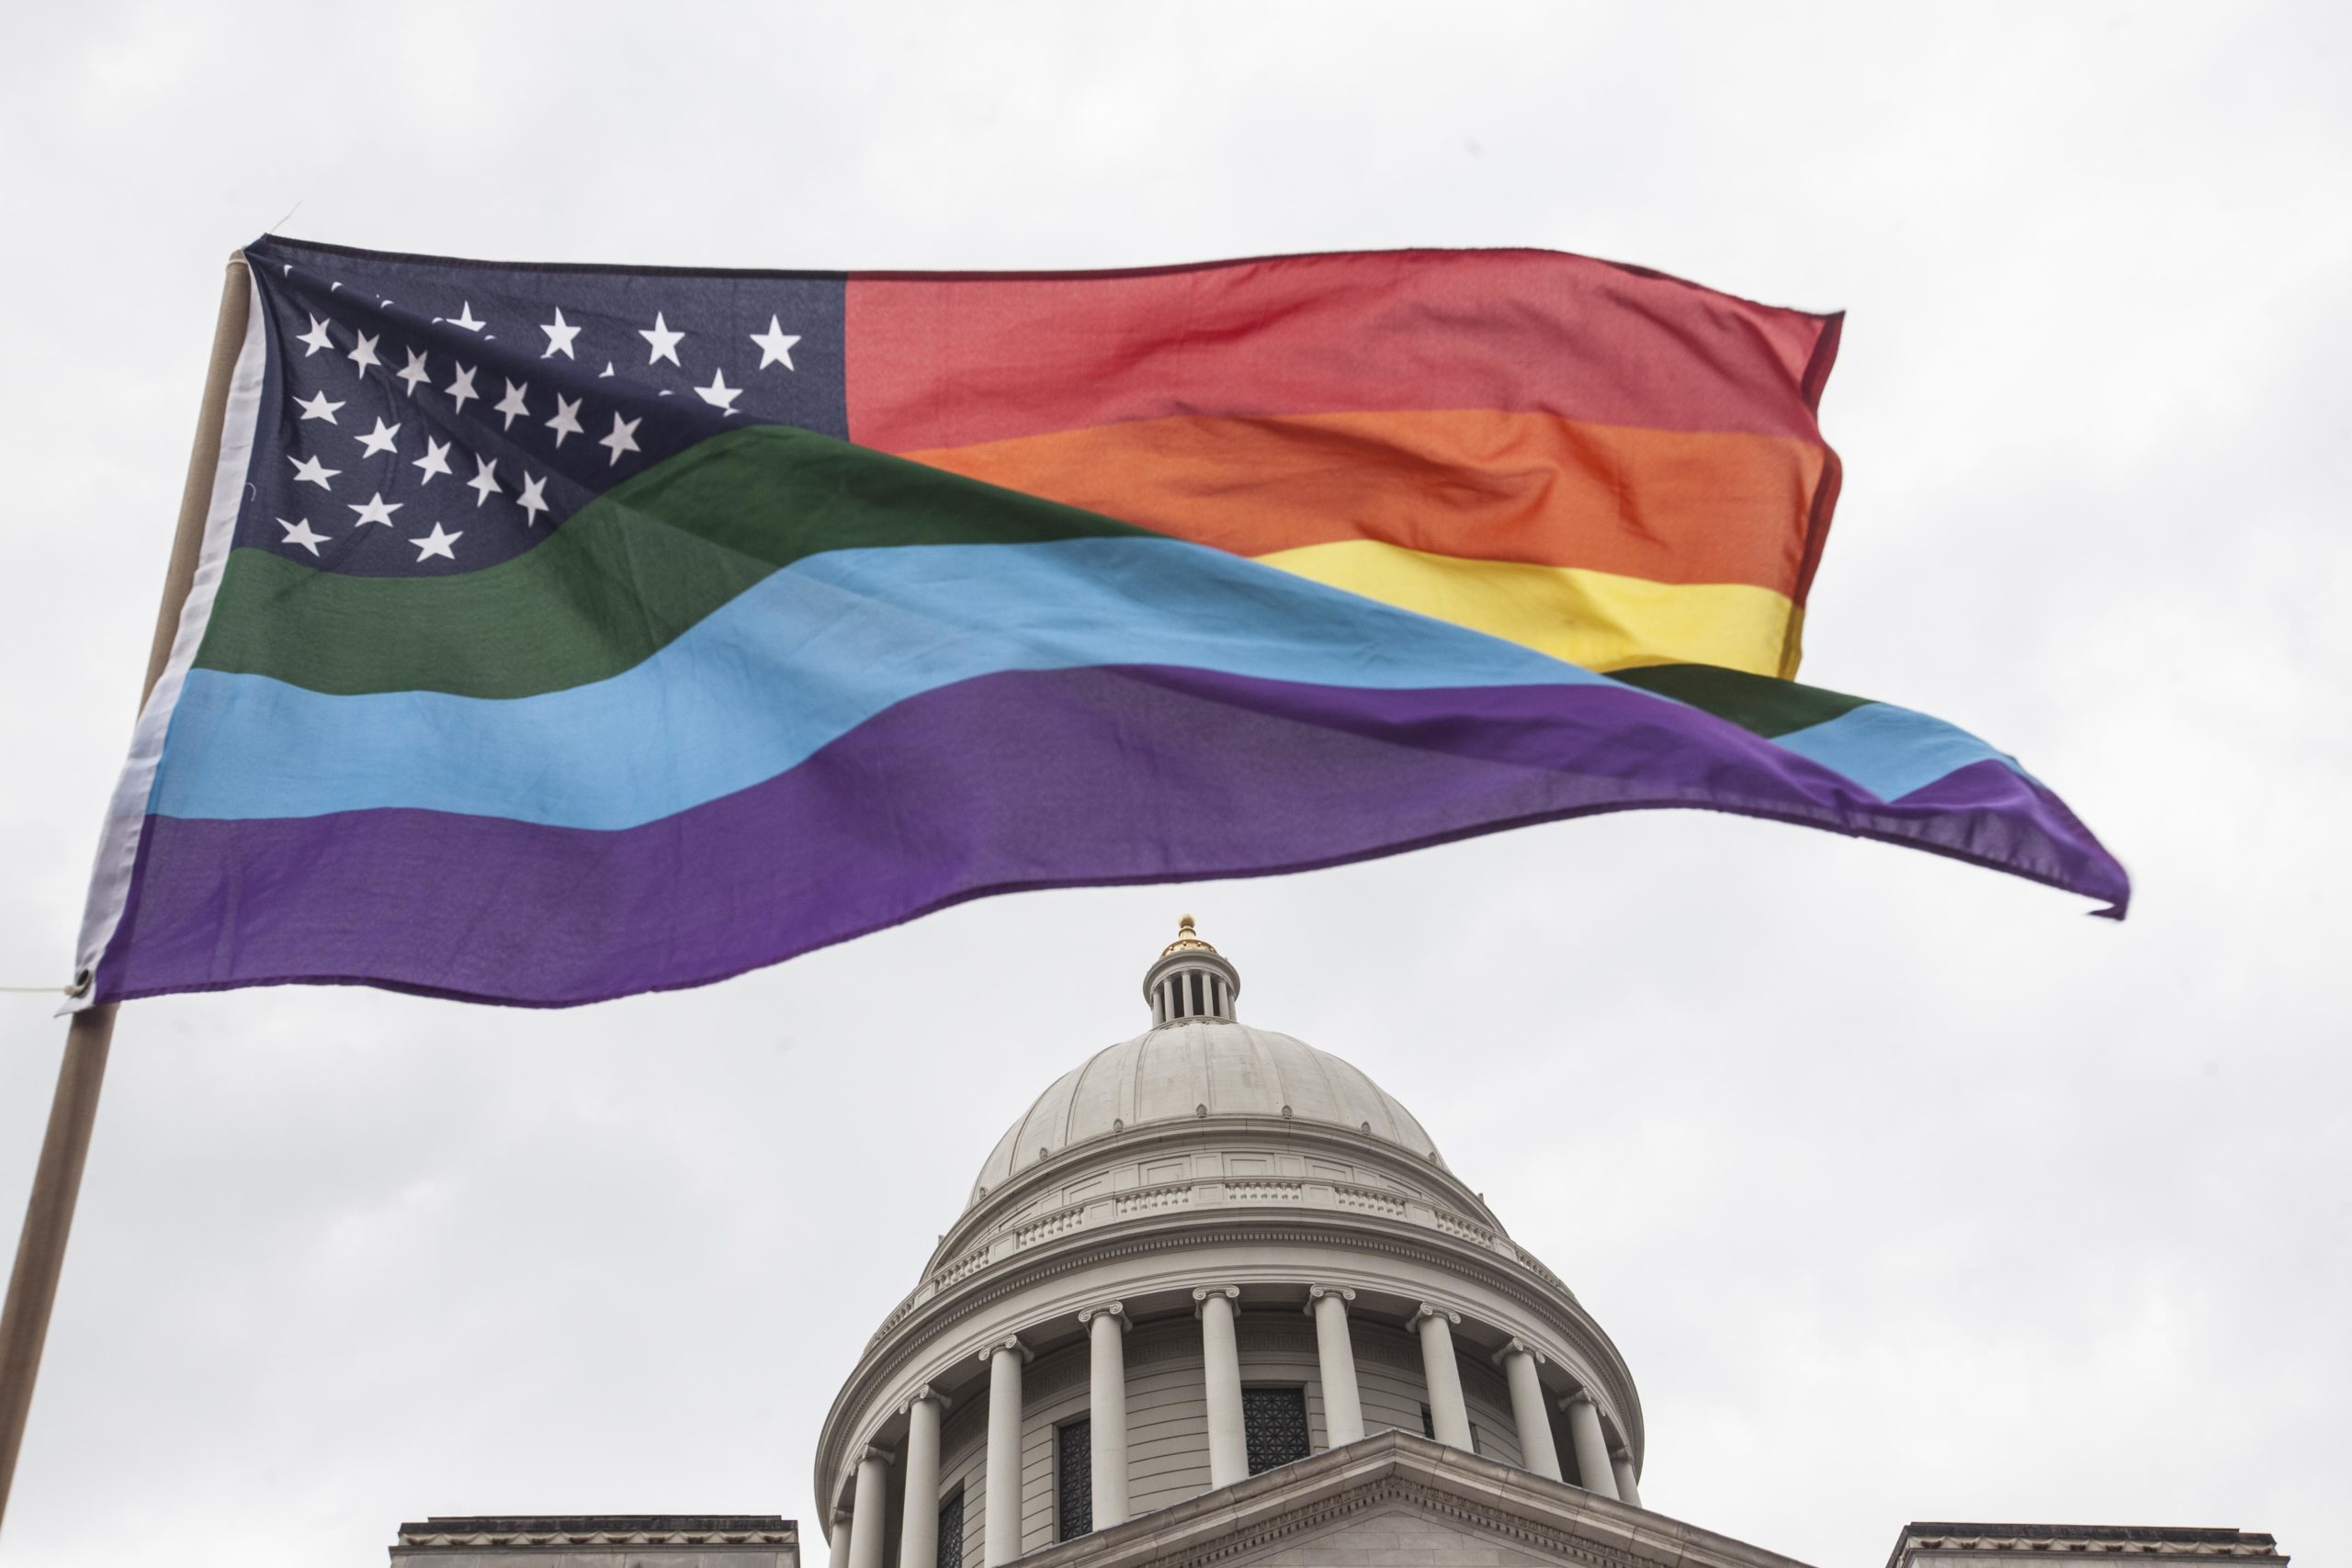 """LITTLE ROCK, AR - APRIL 1: A rainbow flag flies over the crowd during a press conference by the Human Rights Campaign on the steps of the Arkansas State Capital in Little Rock following Gov. Asa Hutchinson's comments on House Bill 1228, a bill passed which prohibits state and local governments from infringing on a person's religious beliefs without a """"compelling"""" interest, on April 1, 2015 in Little Rock, Arkansas. (Photo by Andrea Morales/Getty Images)"""